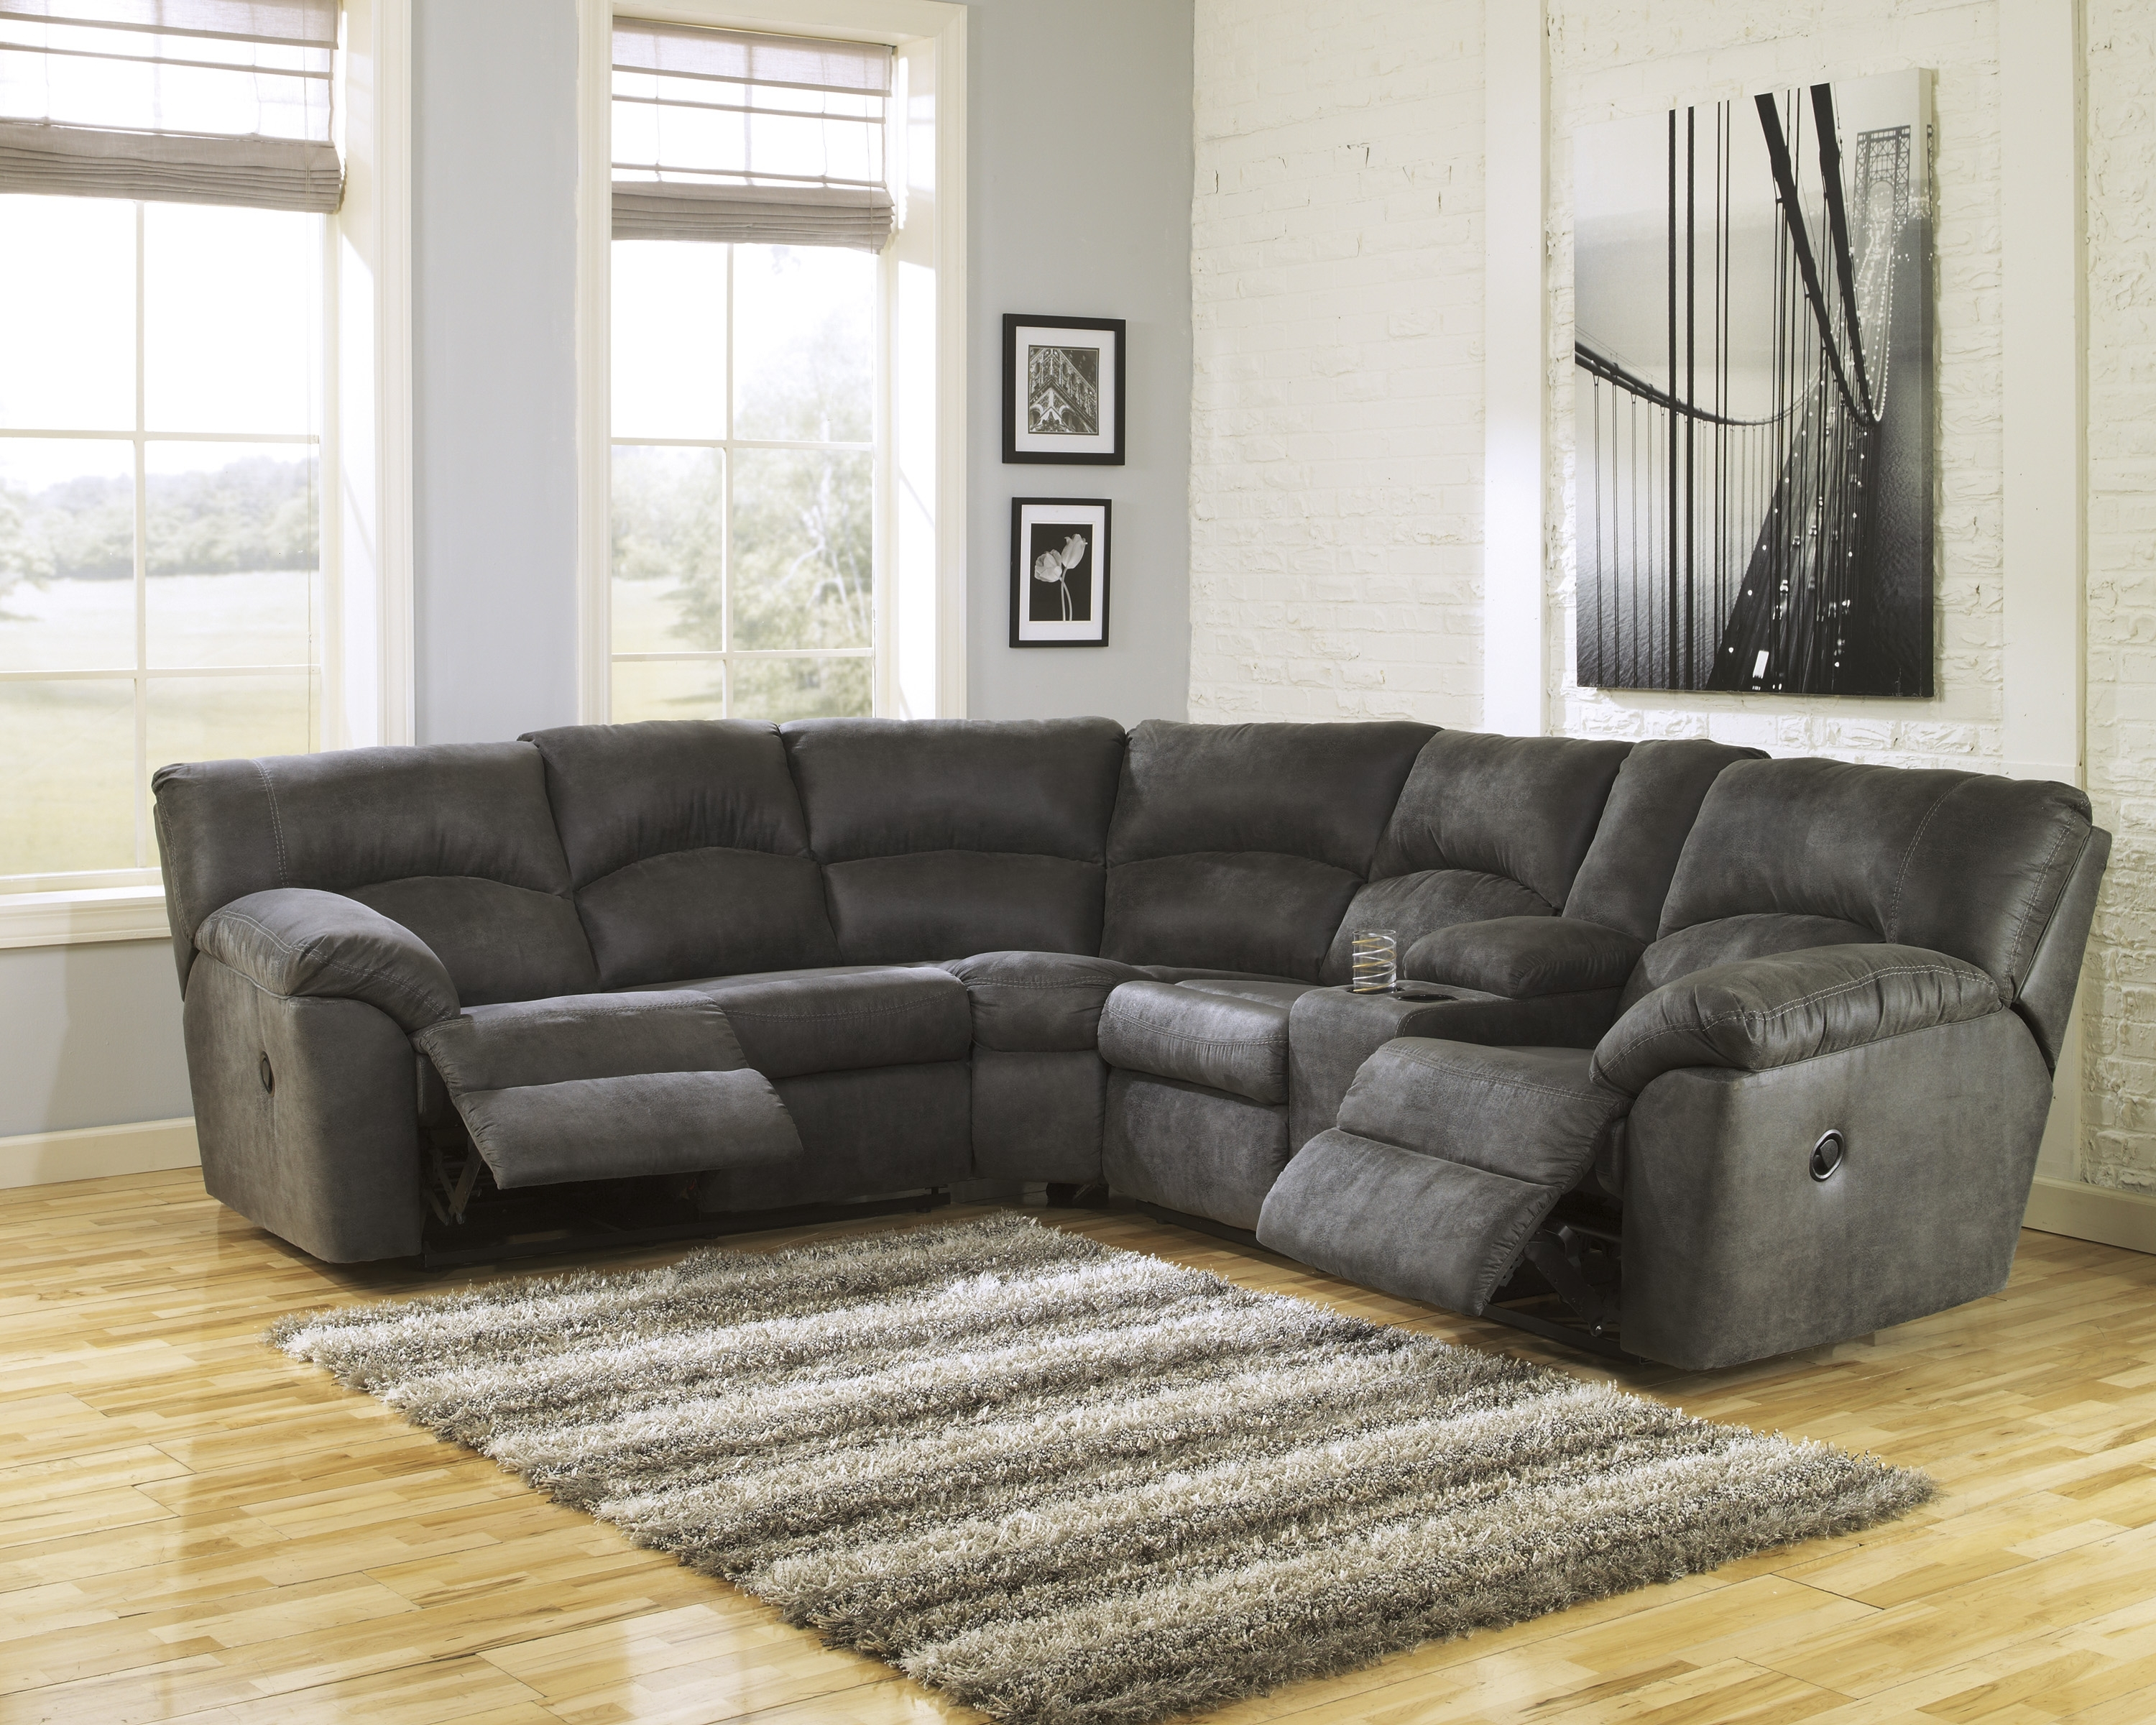 Sectionals Living Room | Furniture | Big Sandy Superstores Inside Denali Charcoal Grey 6 Piece Reclining Sectionals With 2 Power Headrests (View 9 of 25)